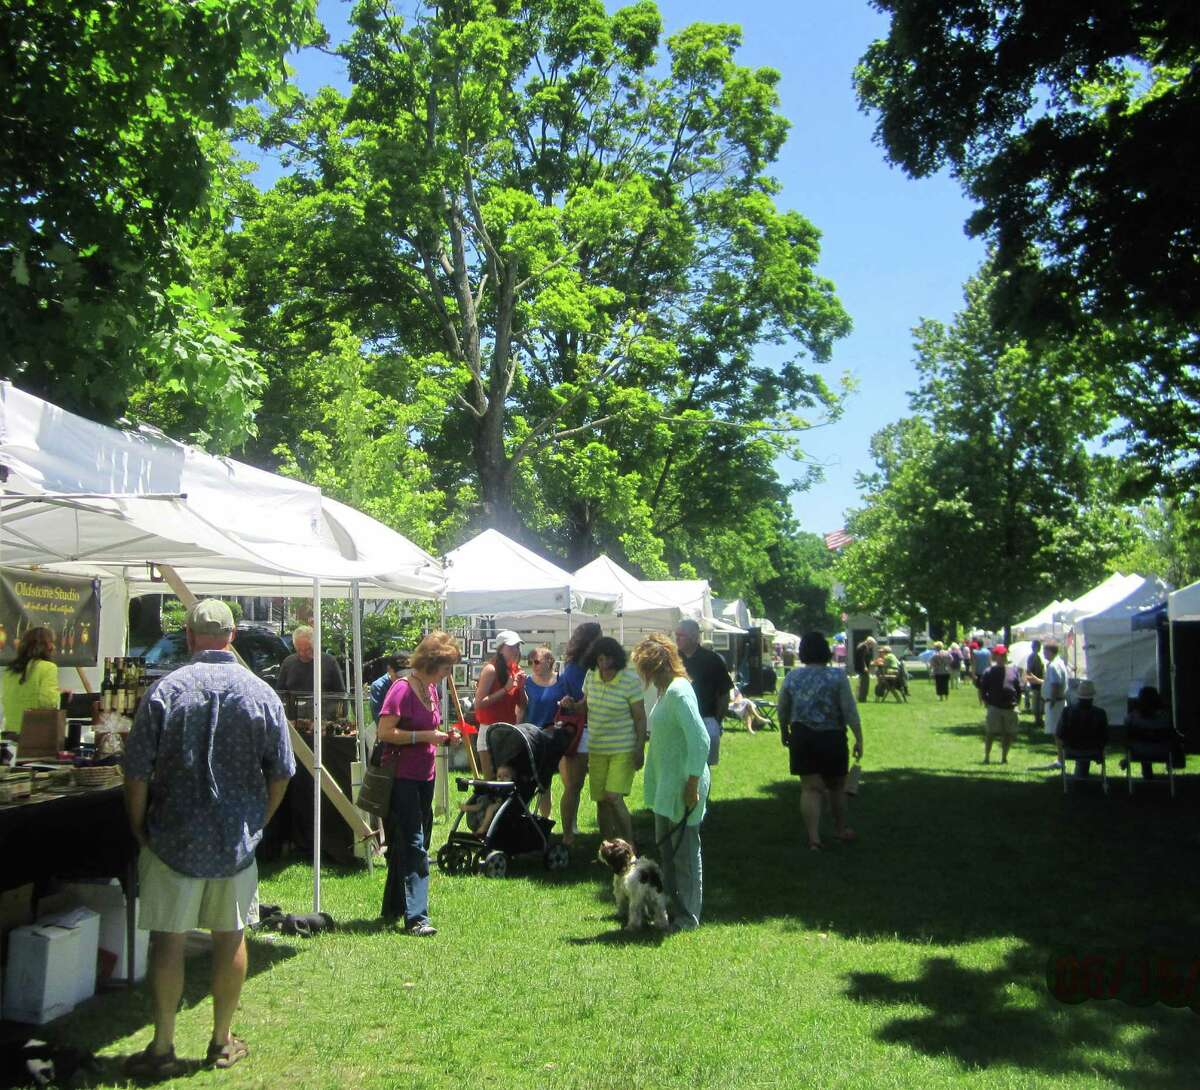 The Outdoor Art Festival graced New Milford's iconic Village Green for a 19th consecutive year, June 14-15, 2014.